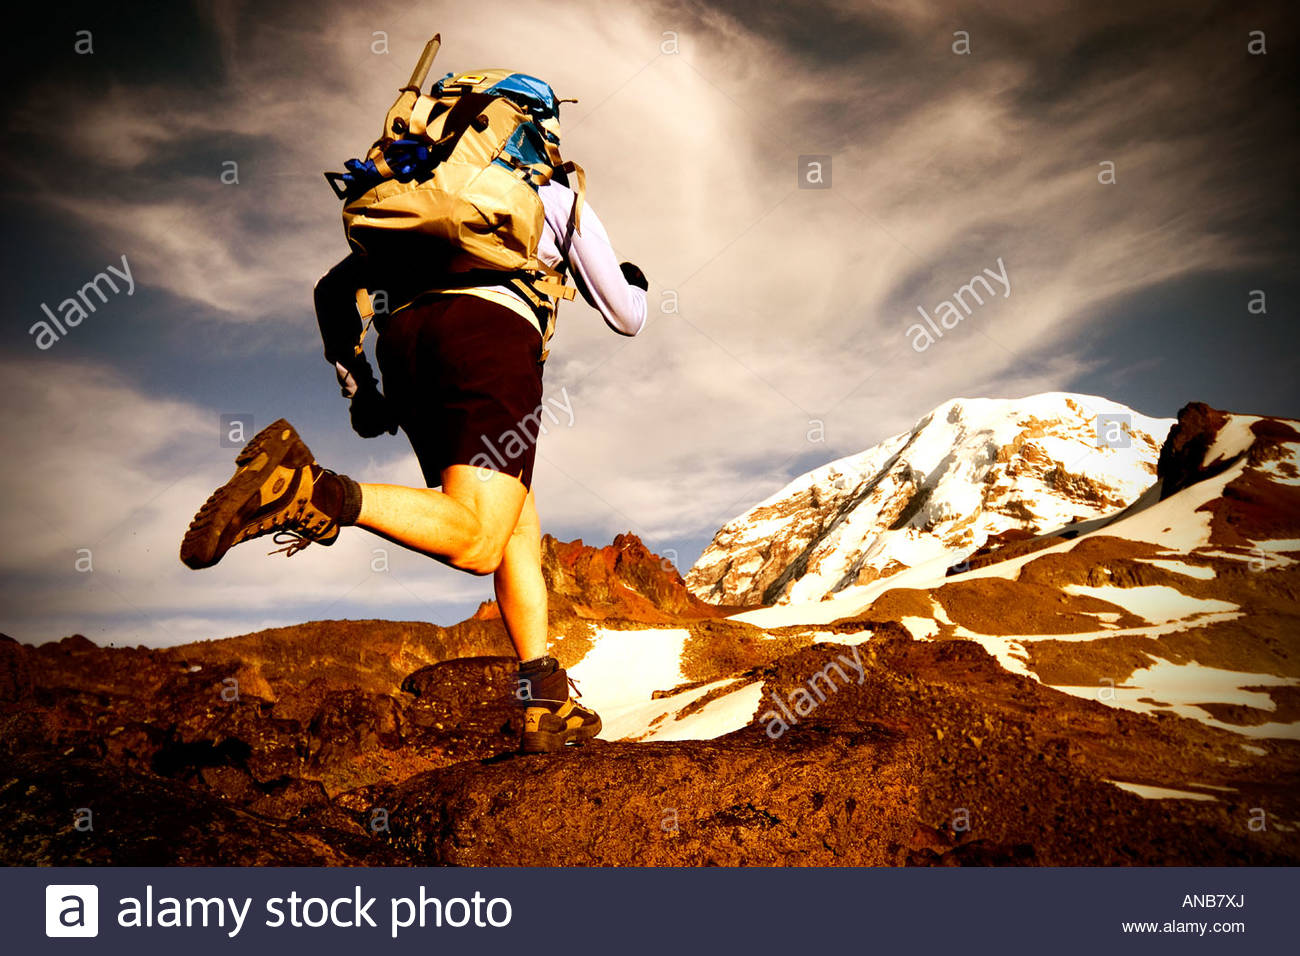 Jane Matera rock hopping through Spray Park Mt Rainier National Park Washington - Stock Image